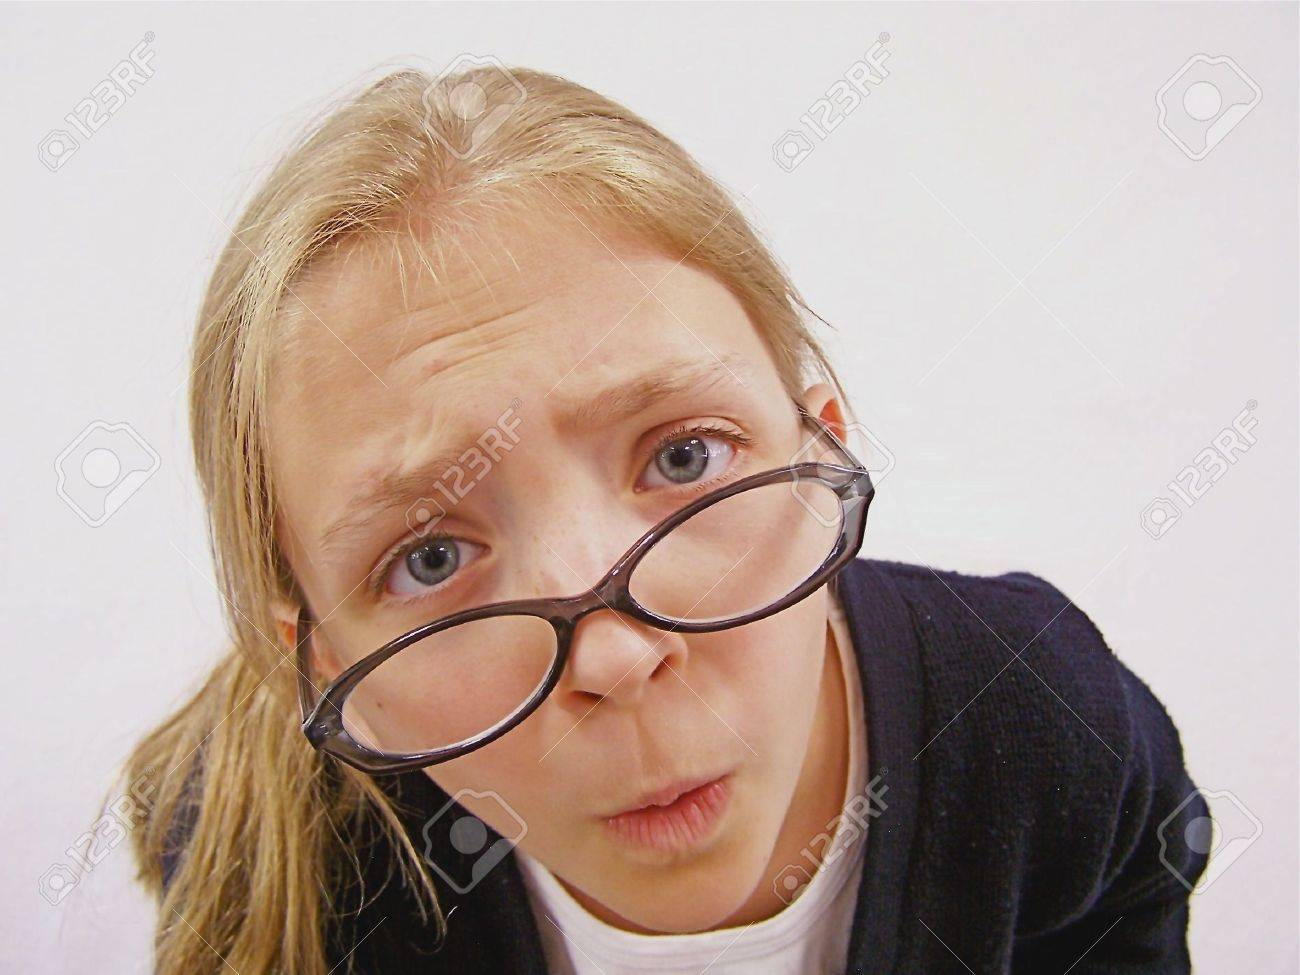 Funny face and glasses Stock Photo - 4472916